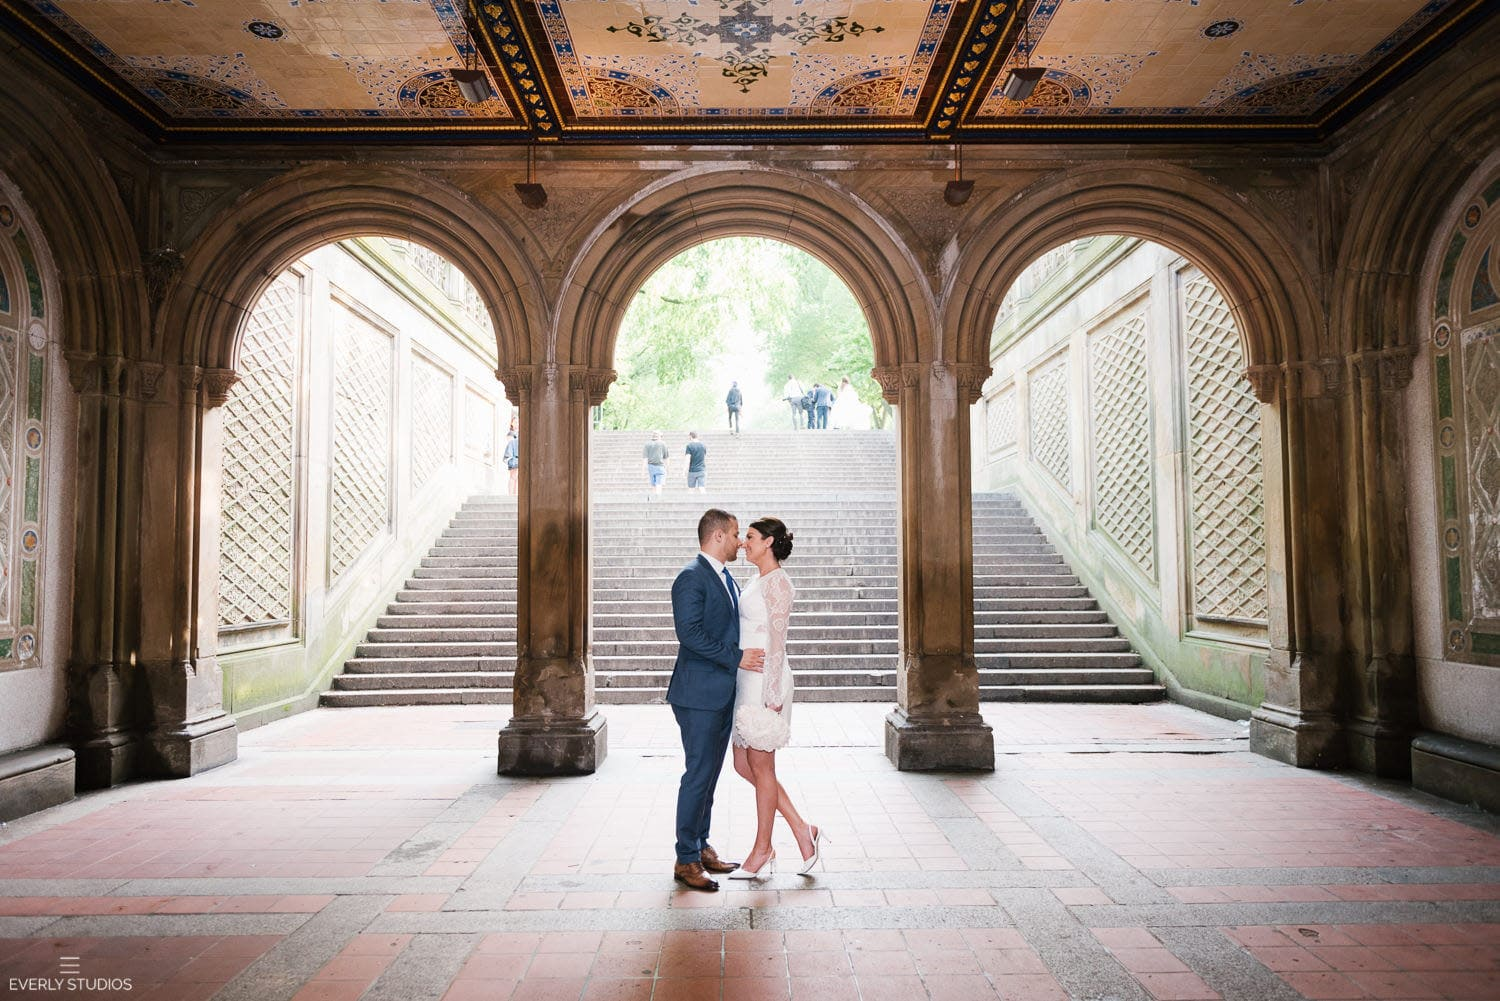 Central Park wedding at Bethesda Terrace. Iconic New York wedding locations with a view. Photo by Brooklyn wedding photographer Everly Studios, www.everlystudios.com